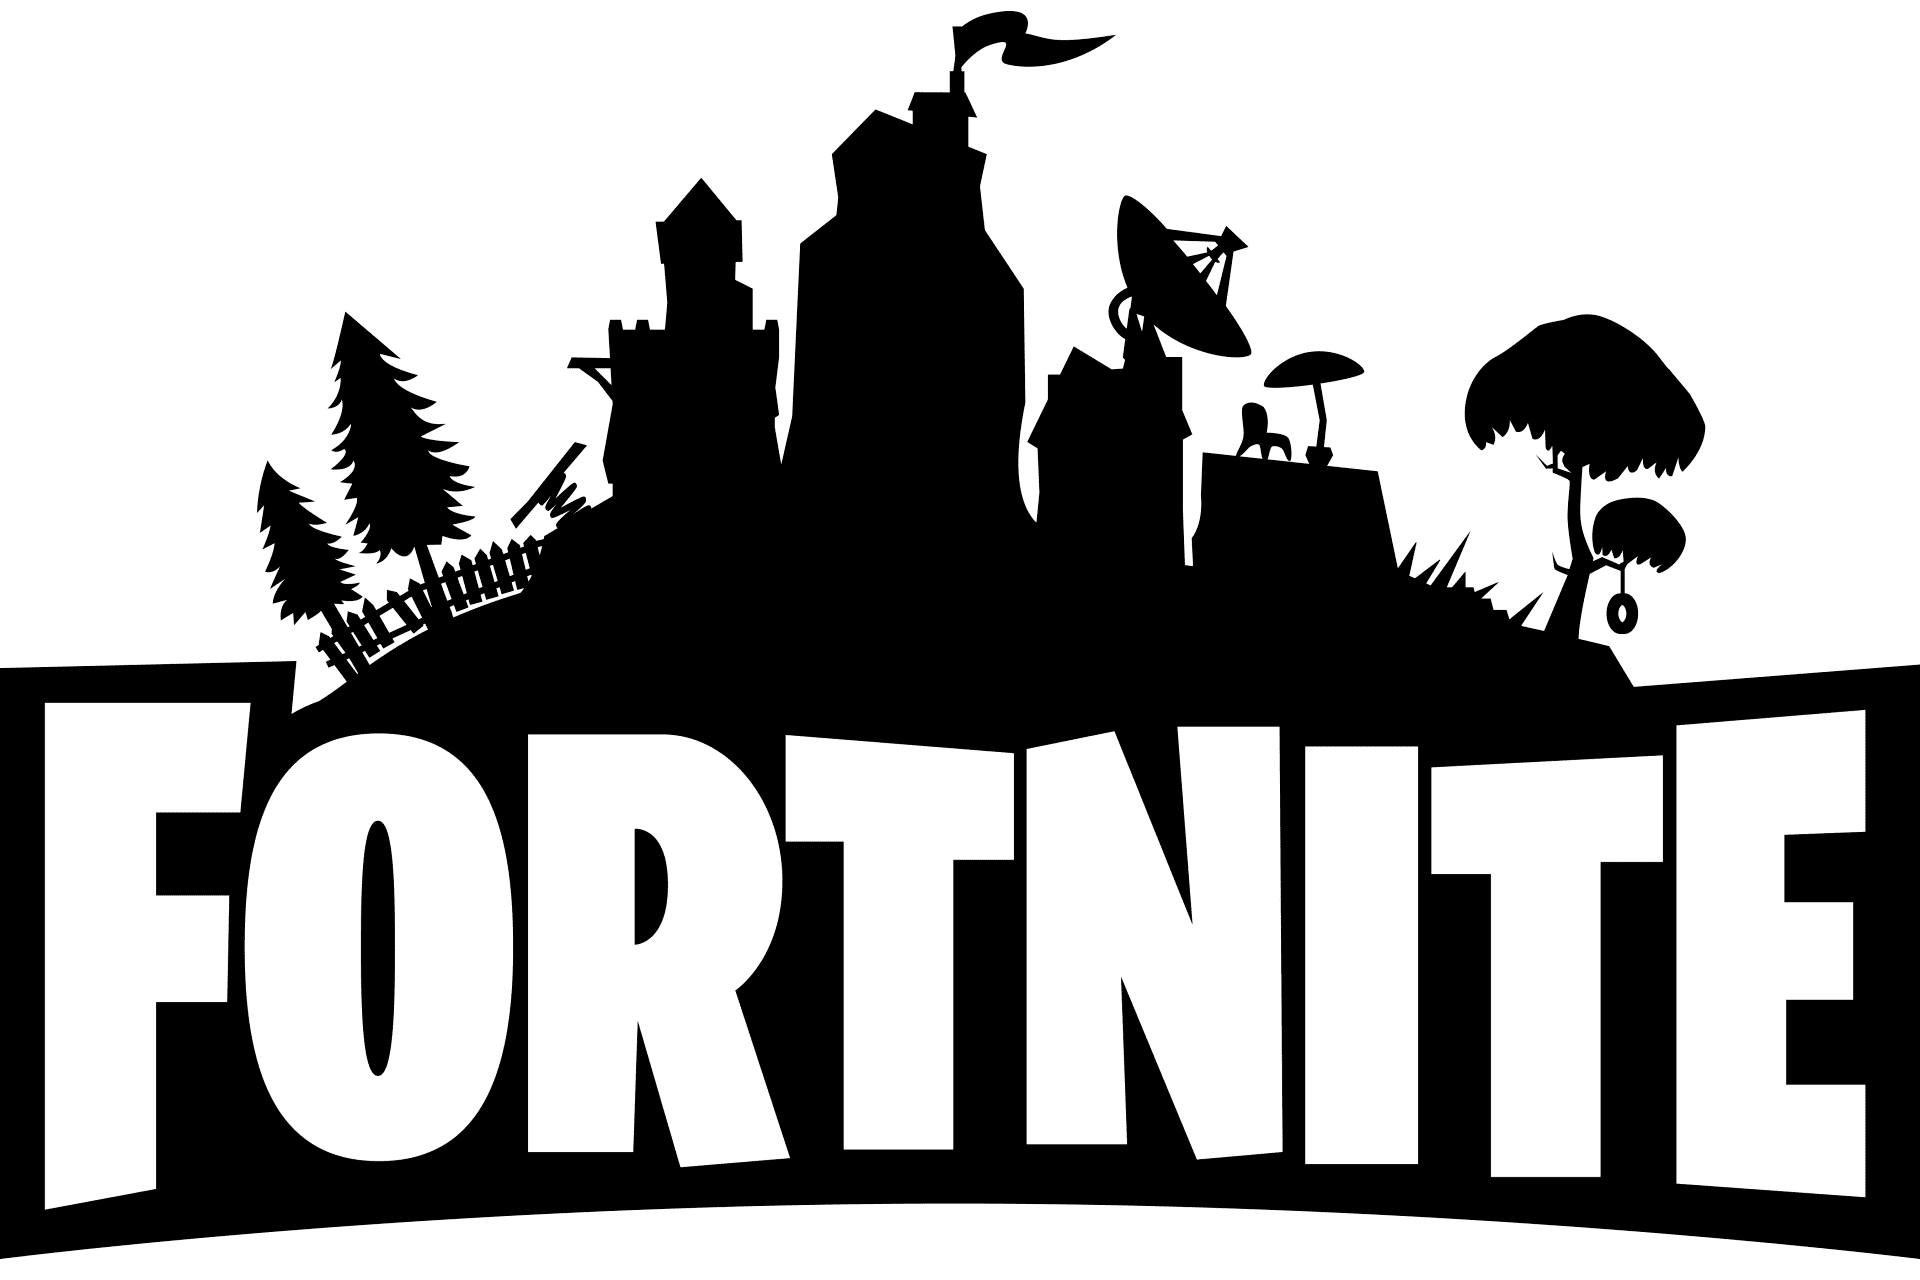 Fortnite clipart cool kid art. Collection of free svg